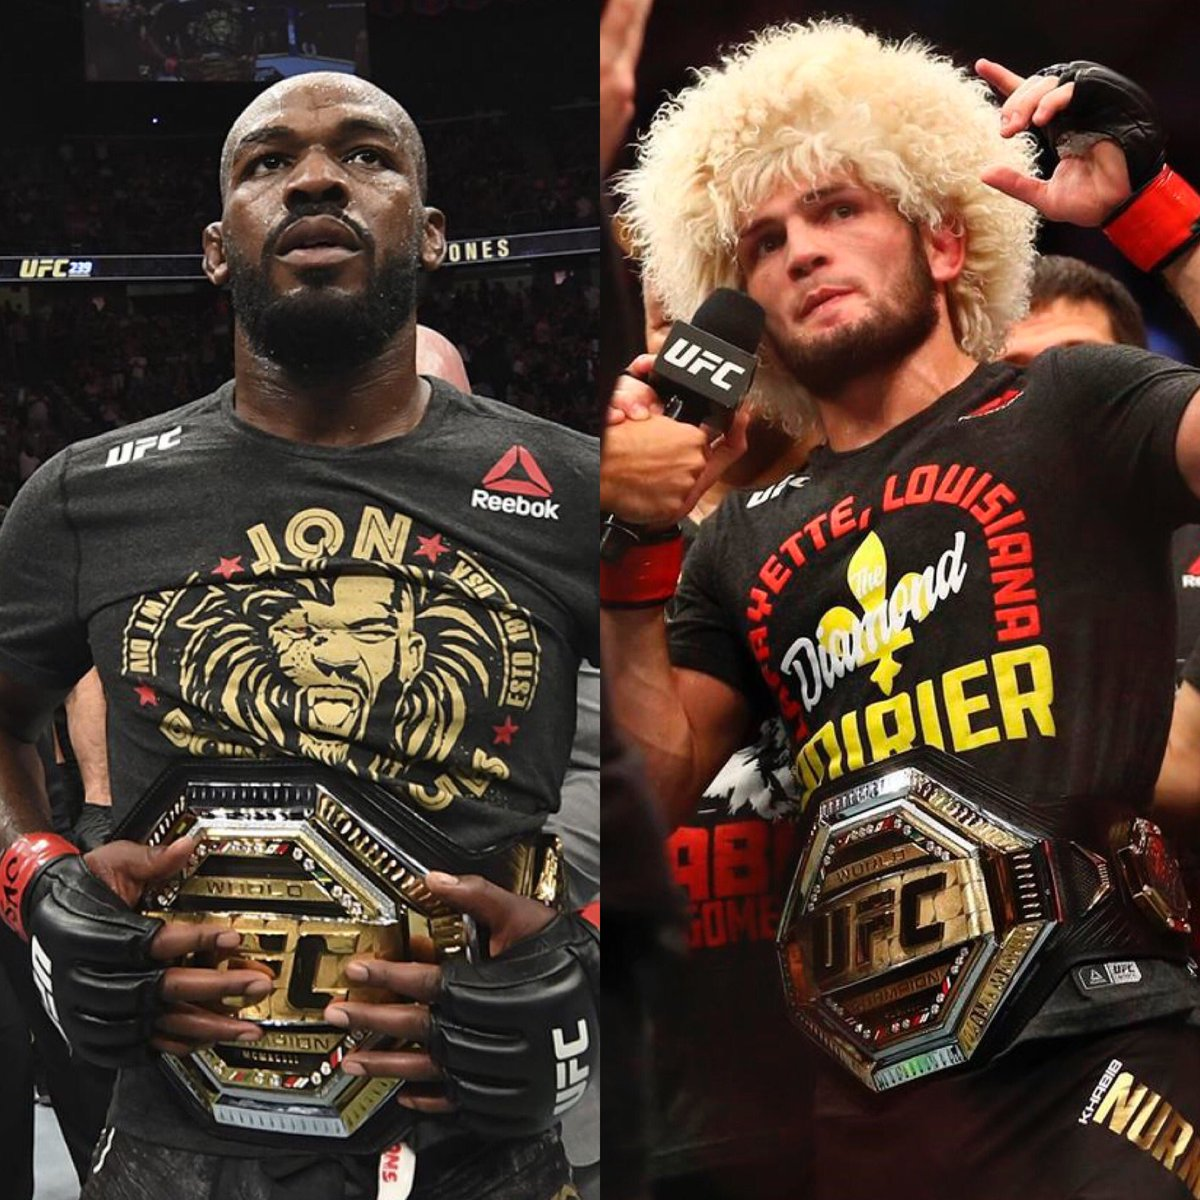 🚨Very important #UFC champion 🐐debate between #JonJones and #Khabib thread:   While both are (more or less) undefeated they have different stats:  Khabib 4-0 in title fights (3 defenses)💥   Jones 14-0-1 in title fights (11 defenses) 👀   #UFC254 #UFCFightIsland6 #Goats https://t.co/RU9DCw1BvJ